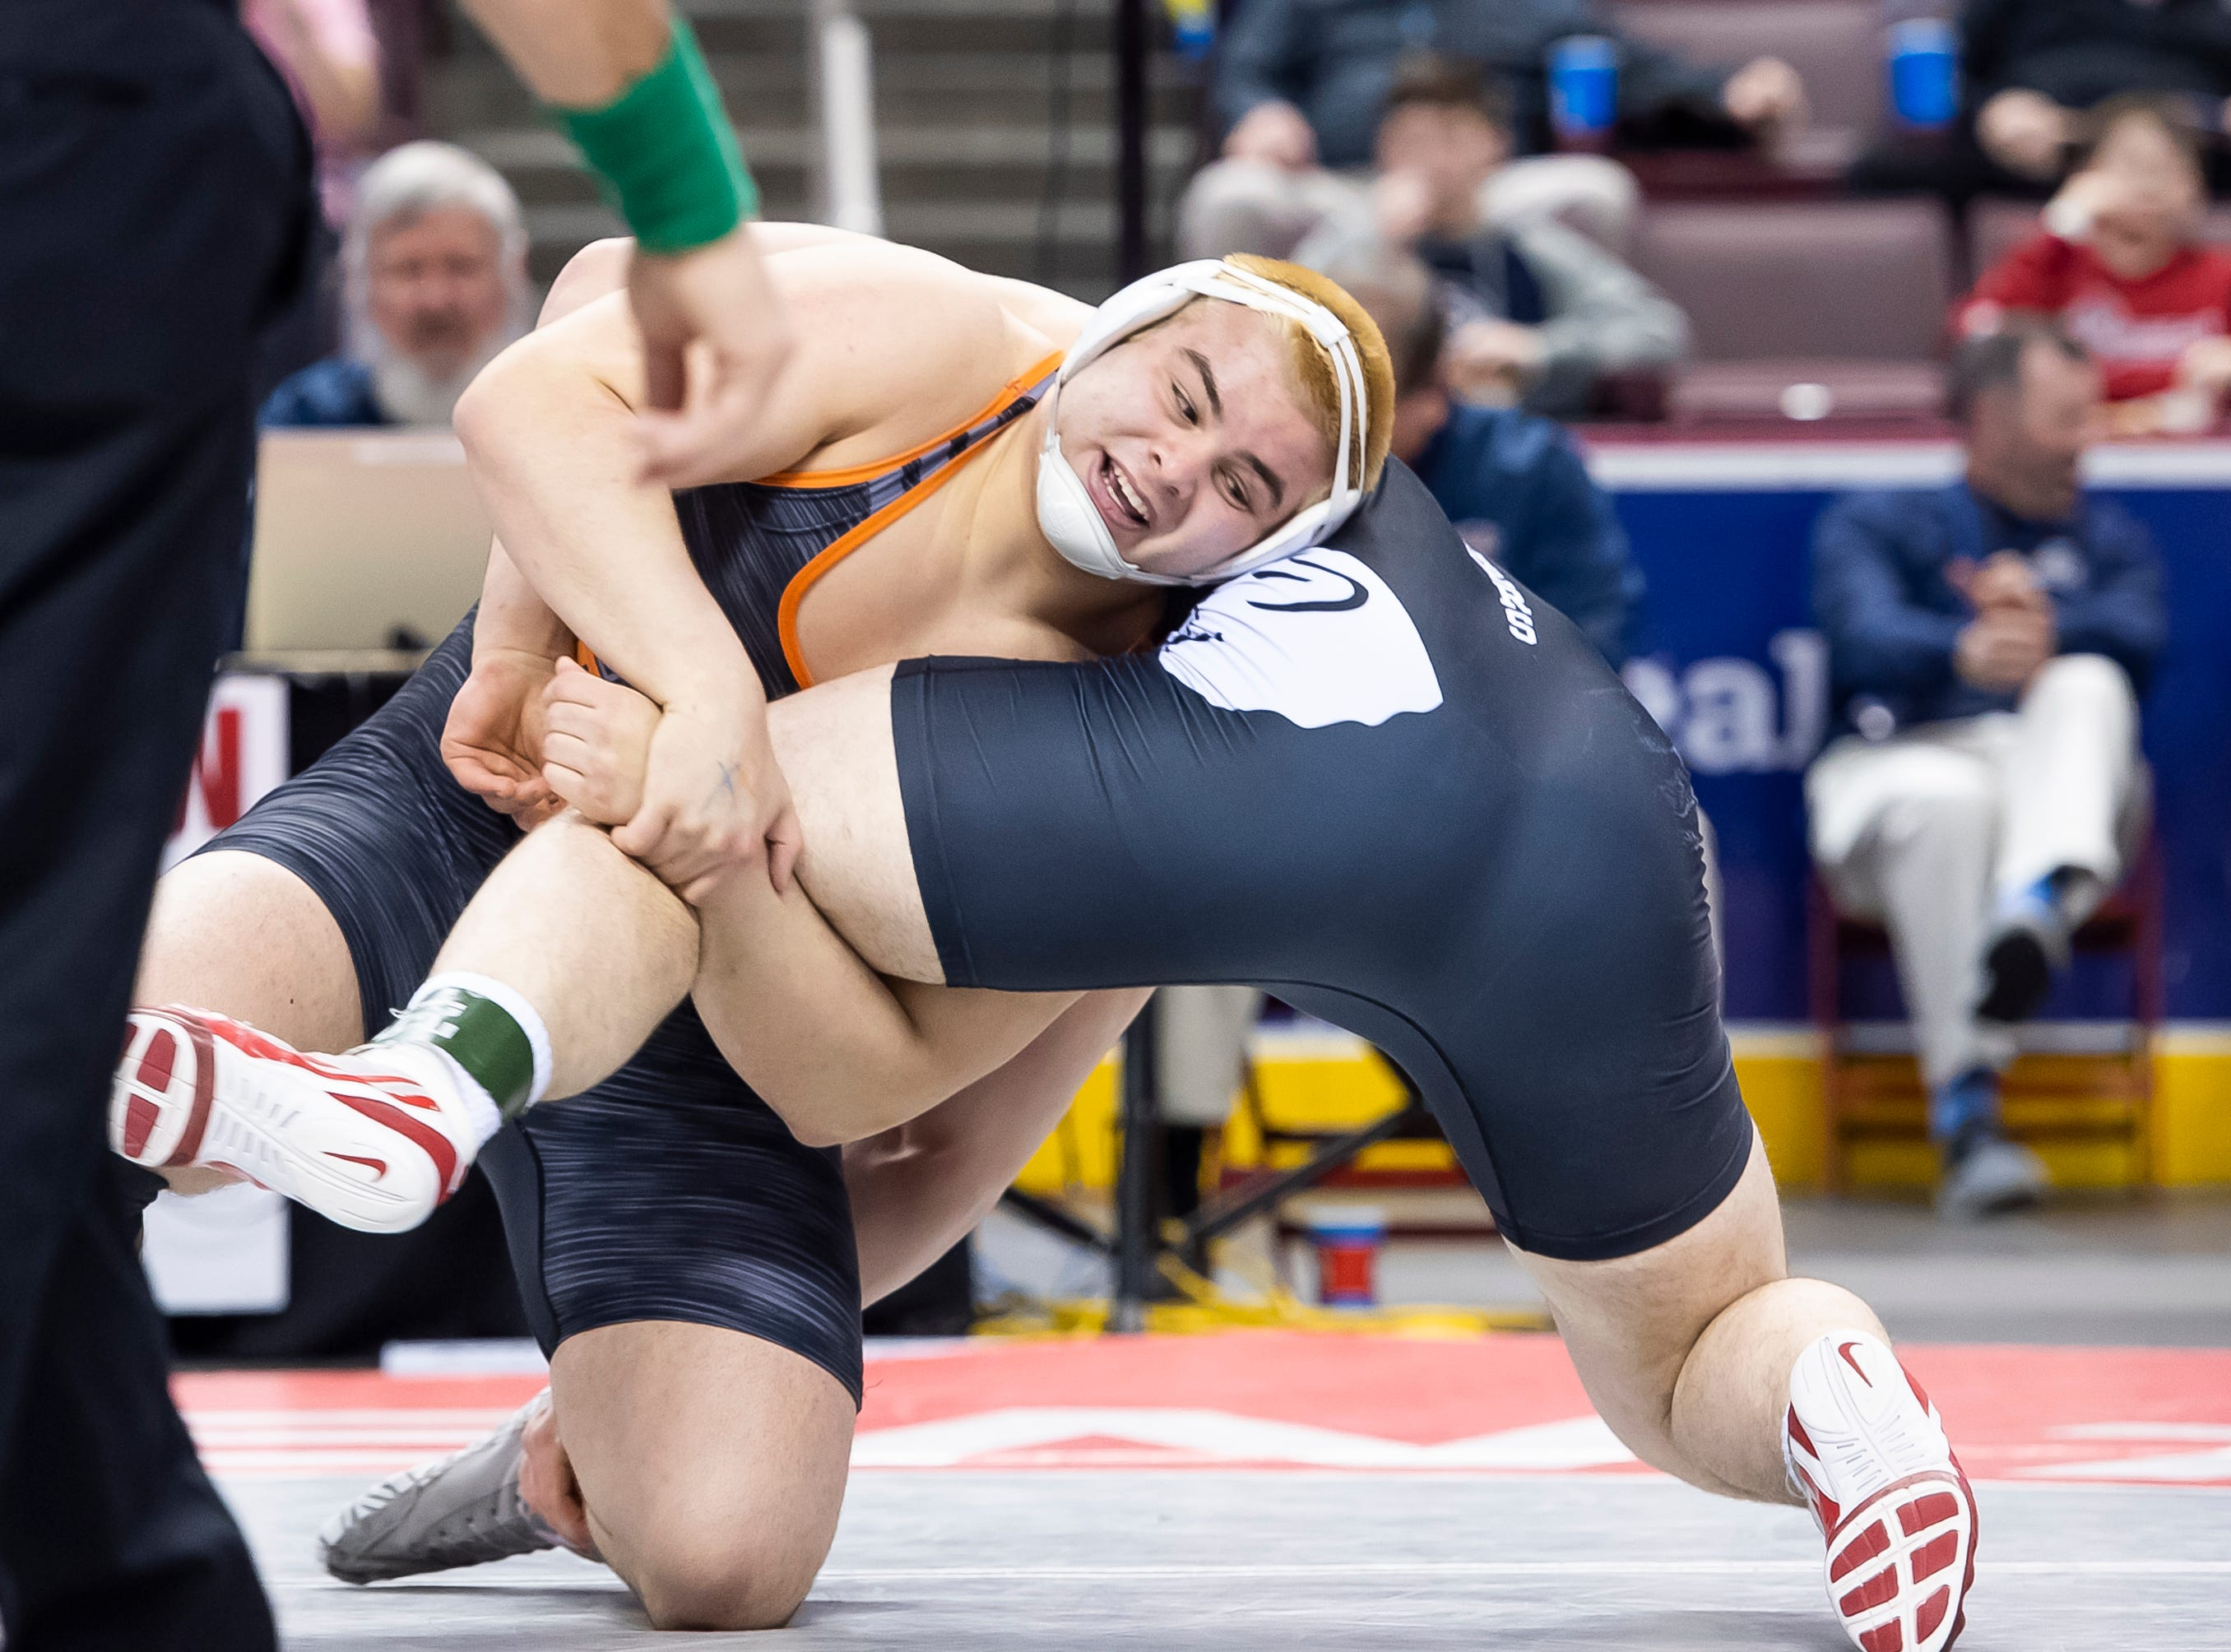 Central York's Michael Wolfgram, top, wrestles Upper St. Clair's Jake Slinger during the 3A 285-pound semifinal bout at the Giant Center in Hershey Saturday, March 9, 2019. Slinger won by a 9-4 decision.